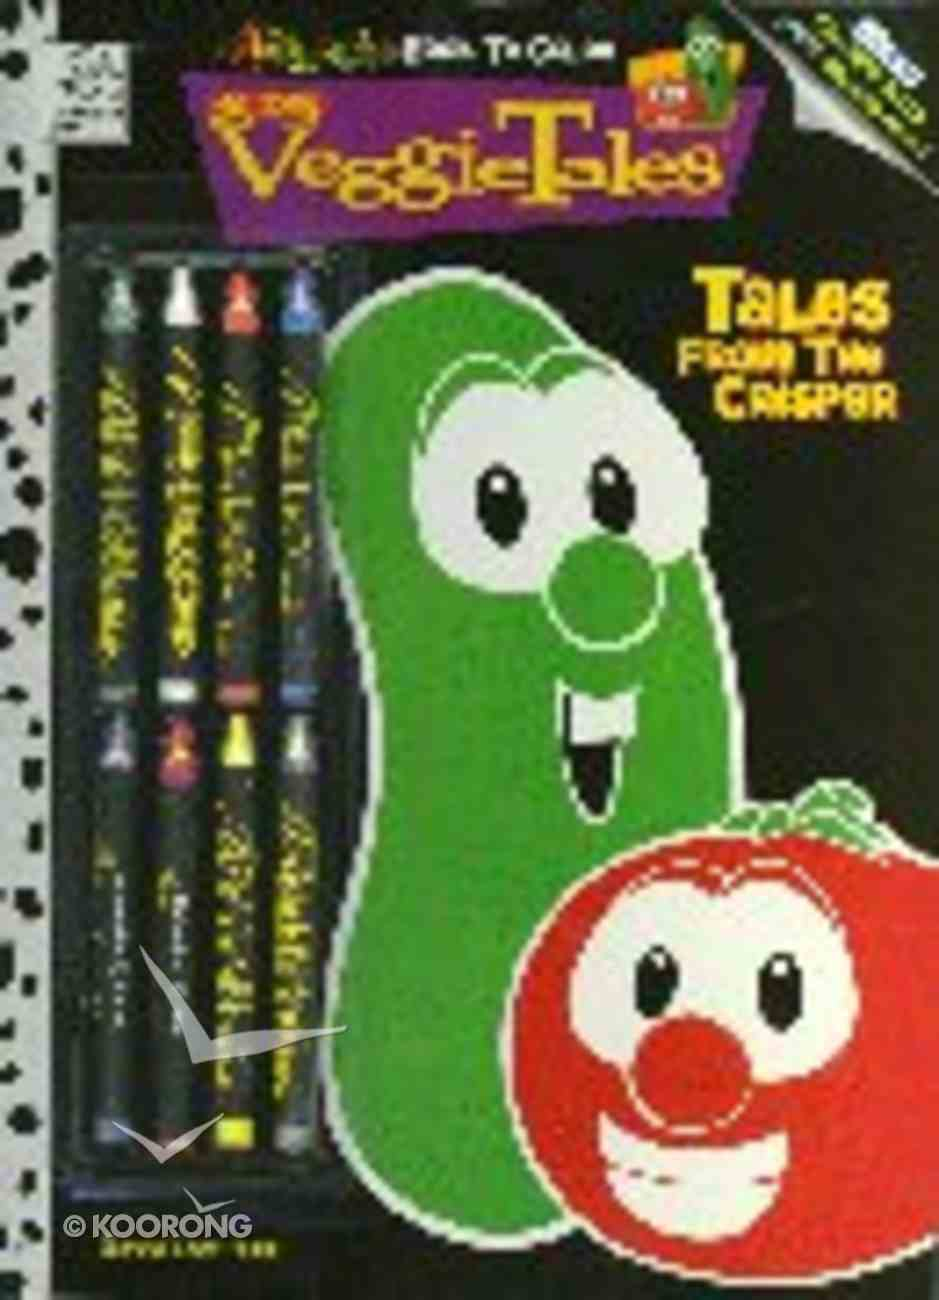 Tales From the Crisper (Veggie Tales (Veggietales) Series) Paperback